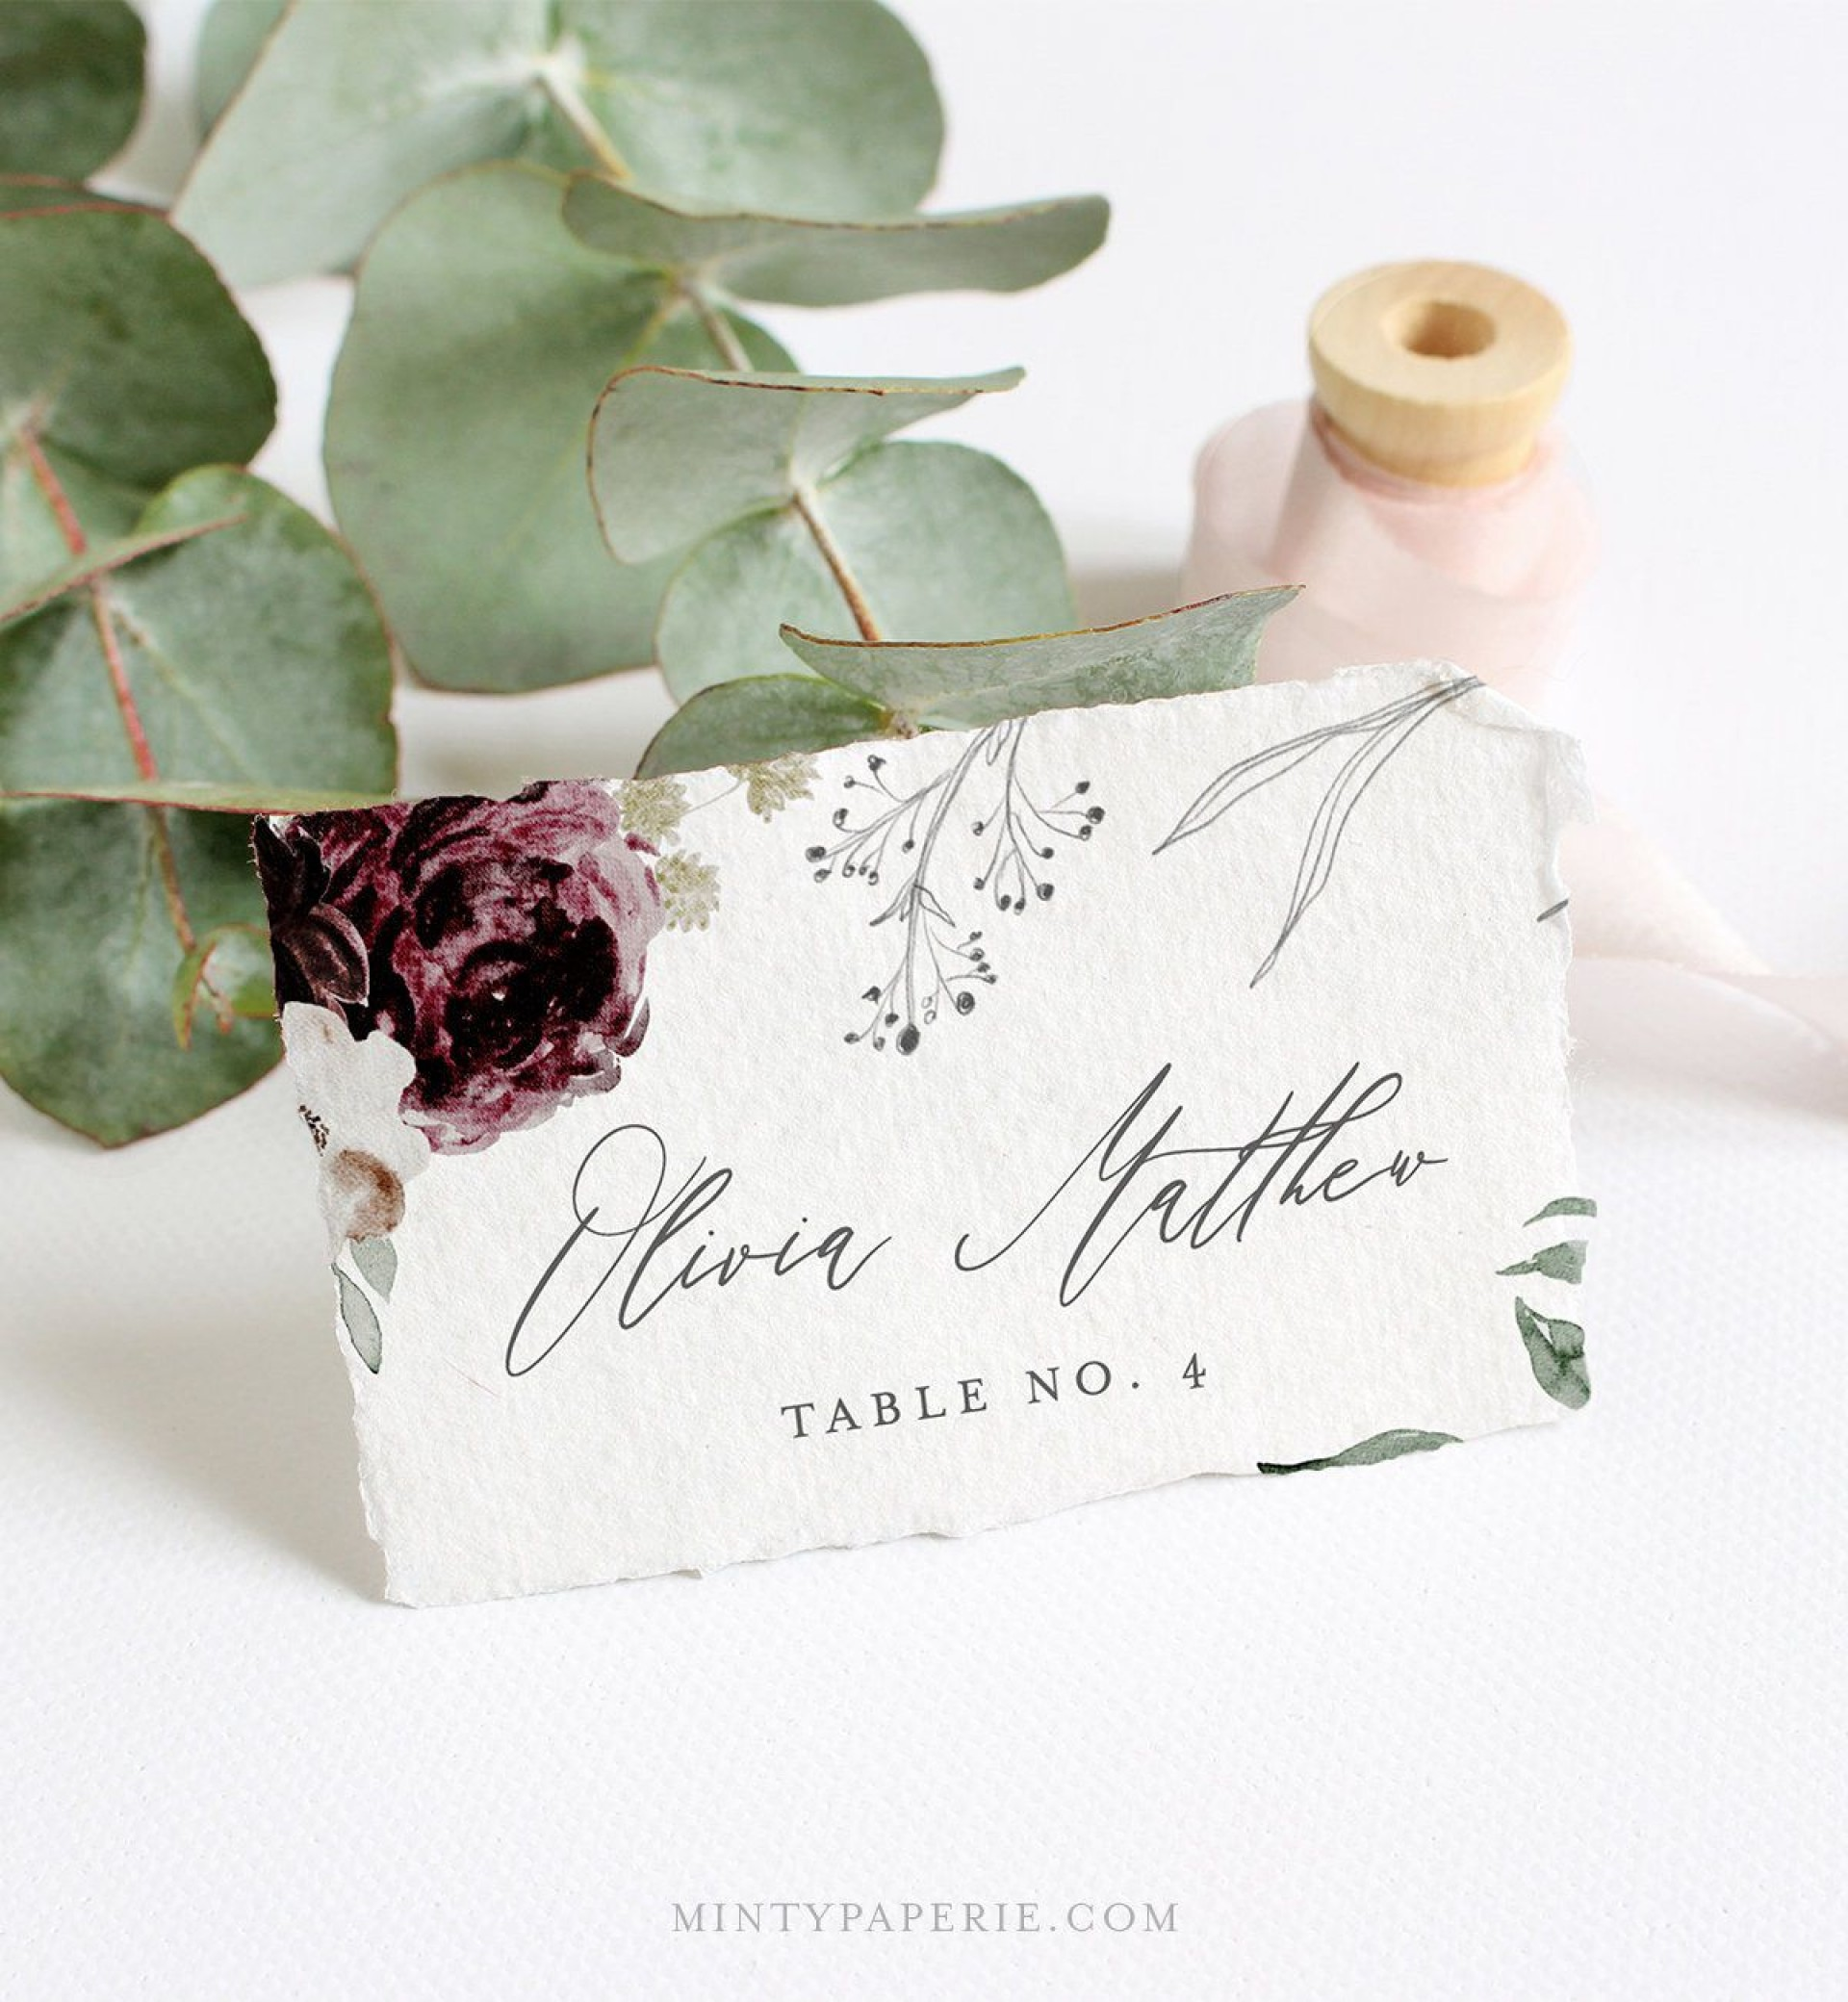 006 Simple Name Place Card Template For Wedding Inspiration  Free Word1920